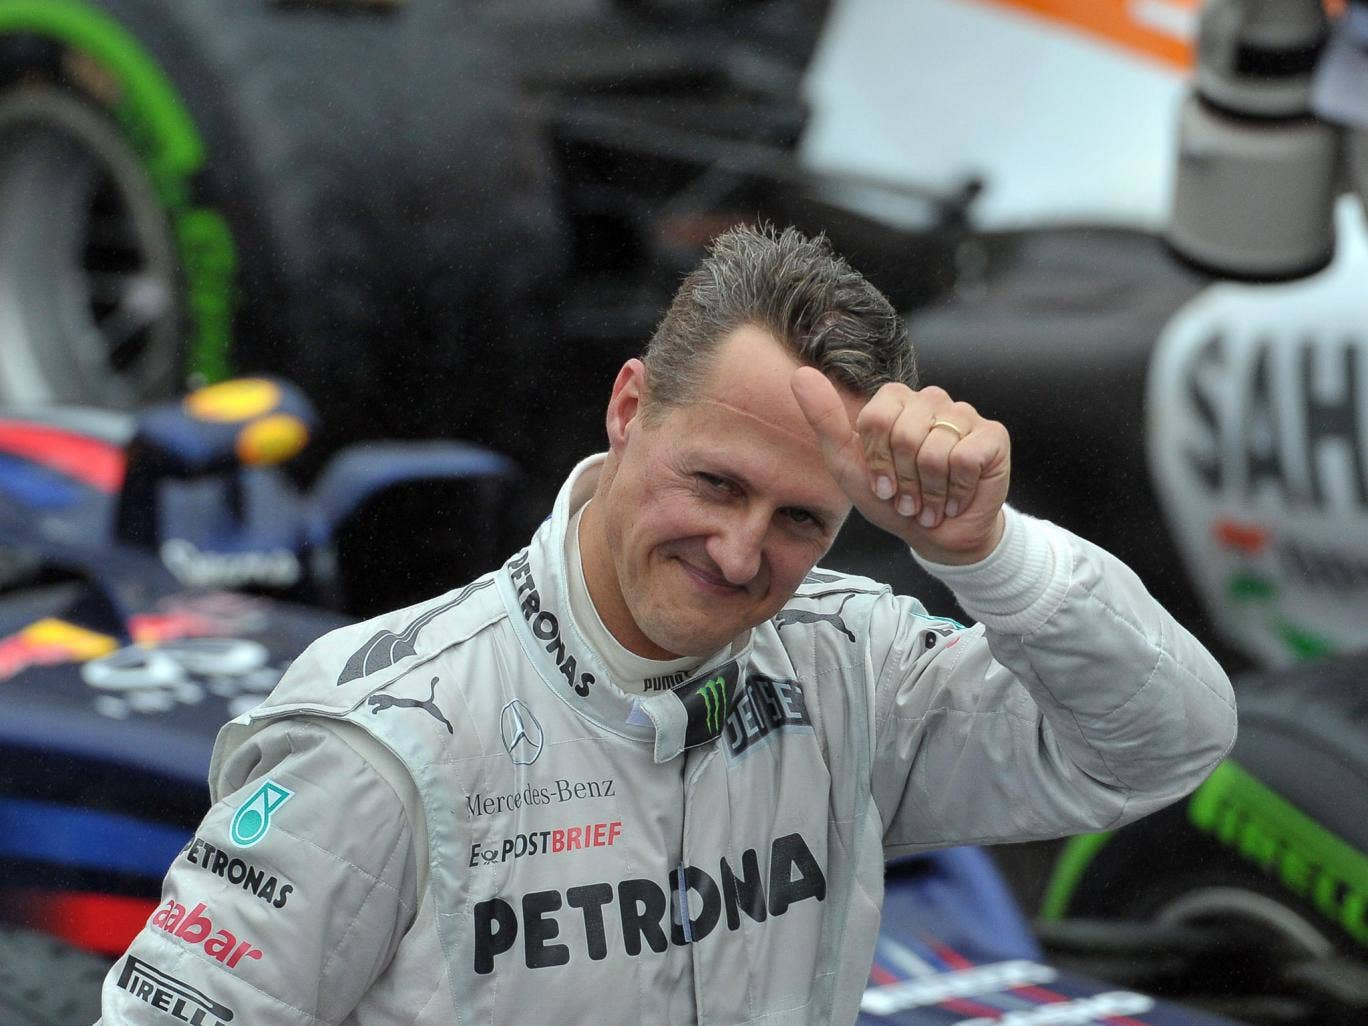 Michael Schumacher gives the thumbs up after qualifying first in Monaco